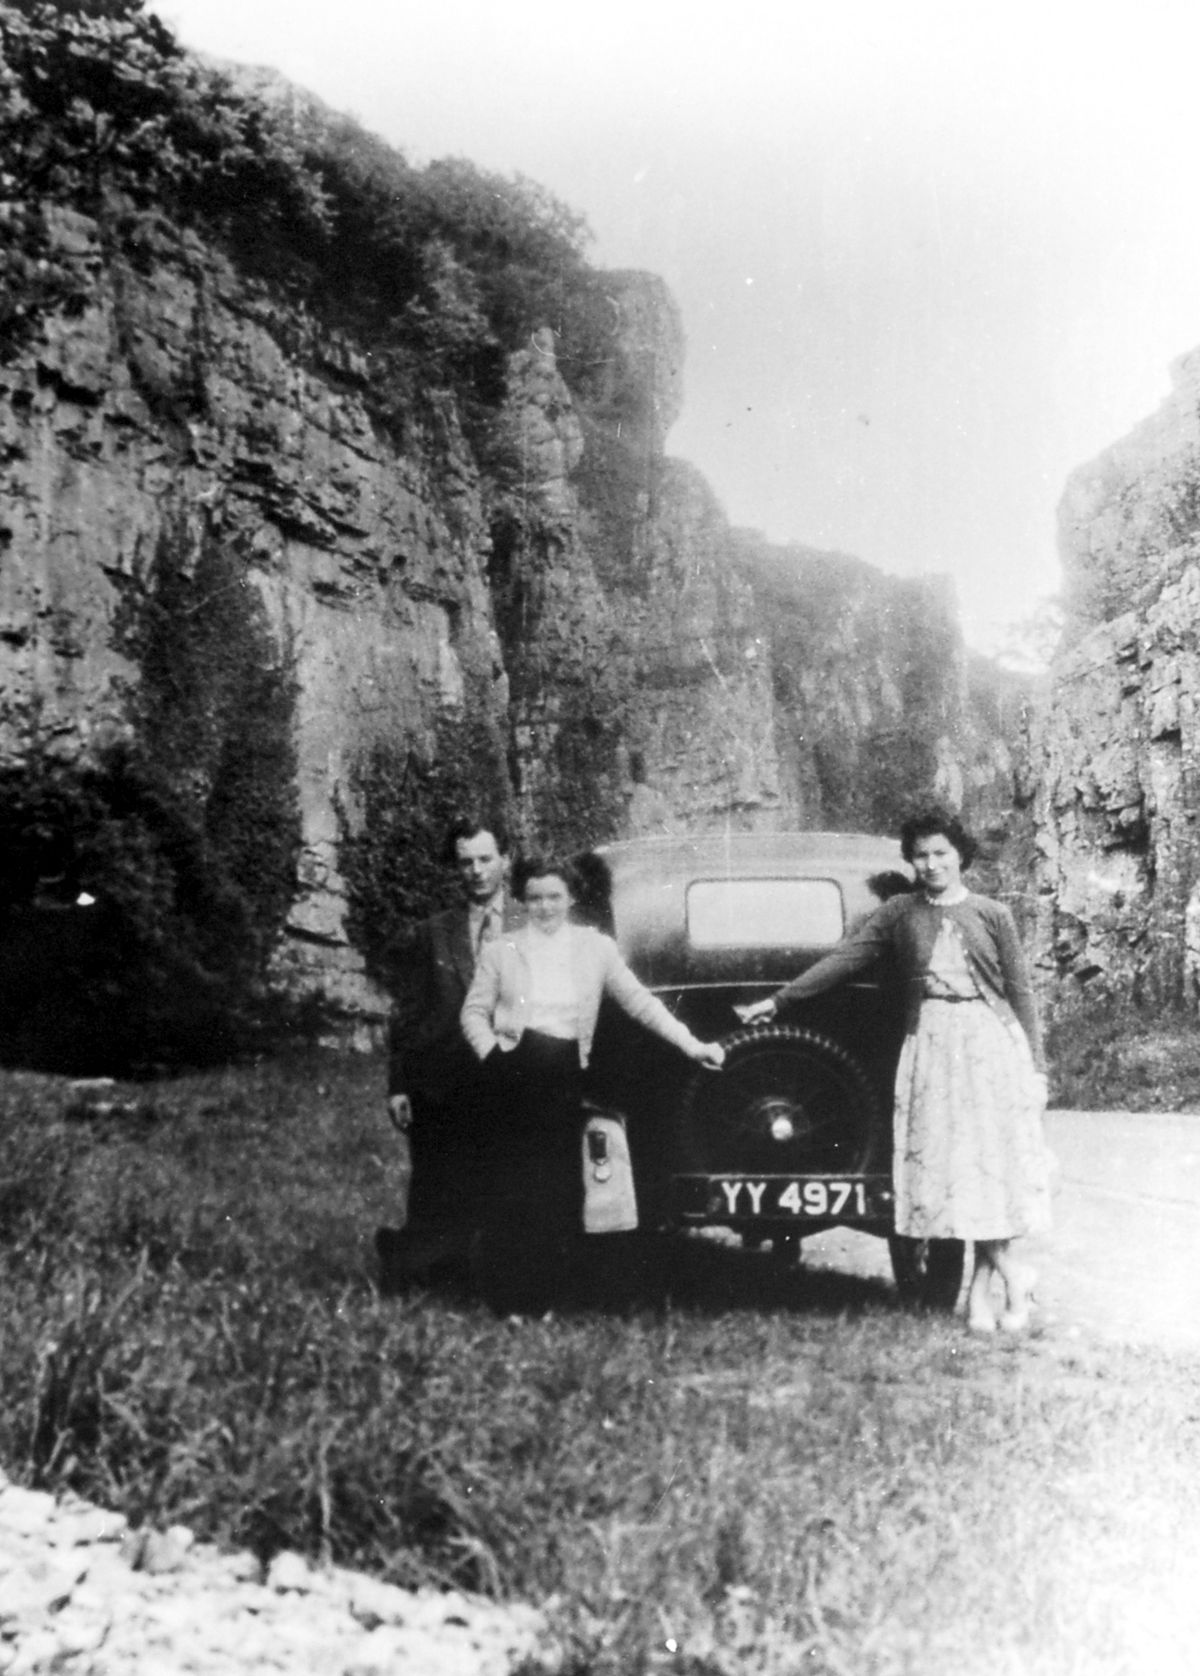 Ken with wife Ethel and his sister Mary on a trip in YY 4971 to the Cheddar Gorge in the 1950s – son Dave is aiming to go back there to recreate this picture.